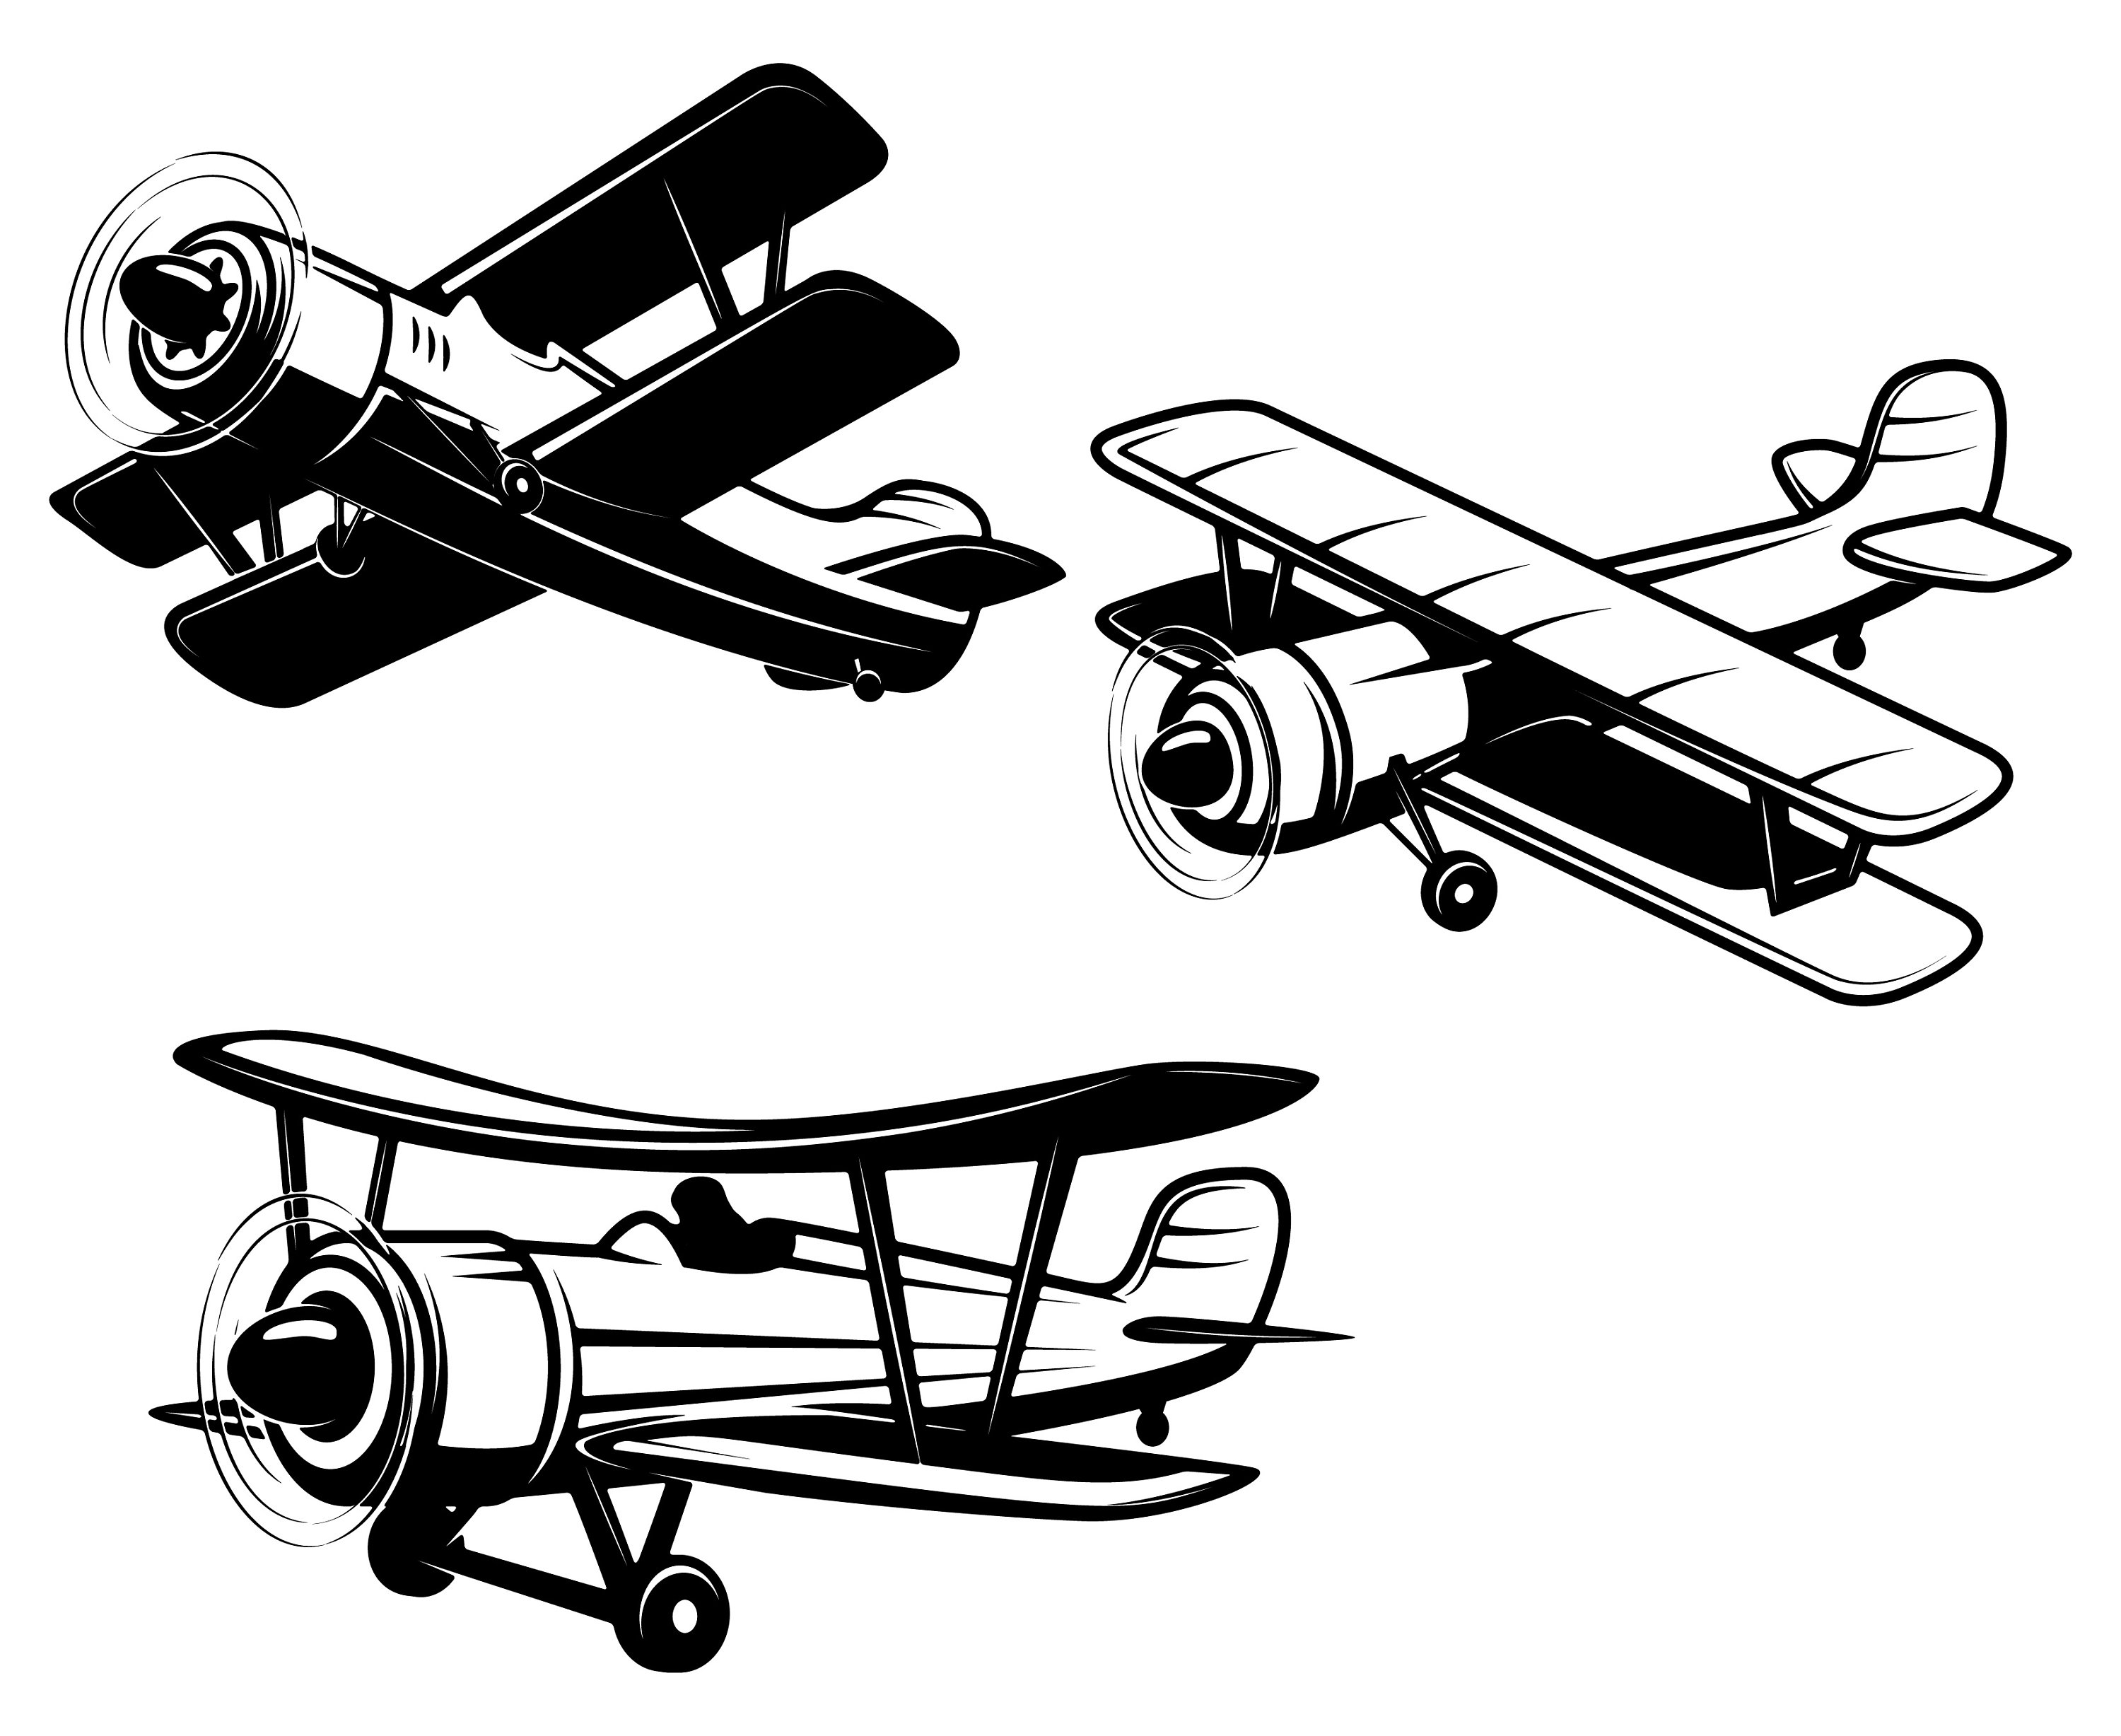 biplane silhouette clip art at getdrawings com free for personal rh getdrawings com aviation clipart images aviation clip art free download